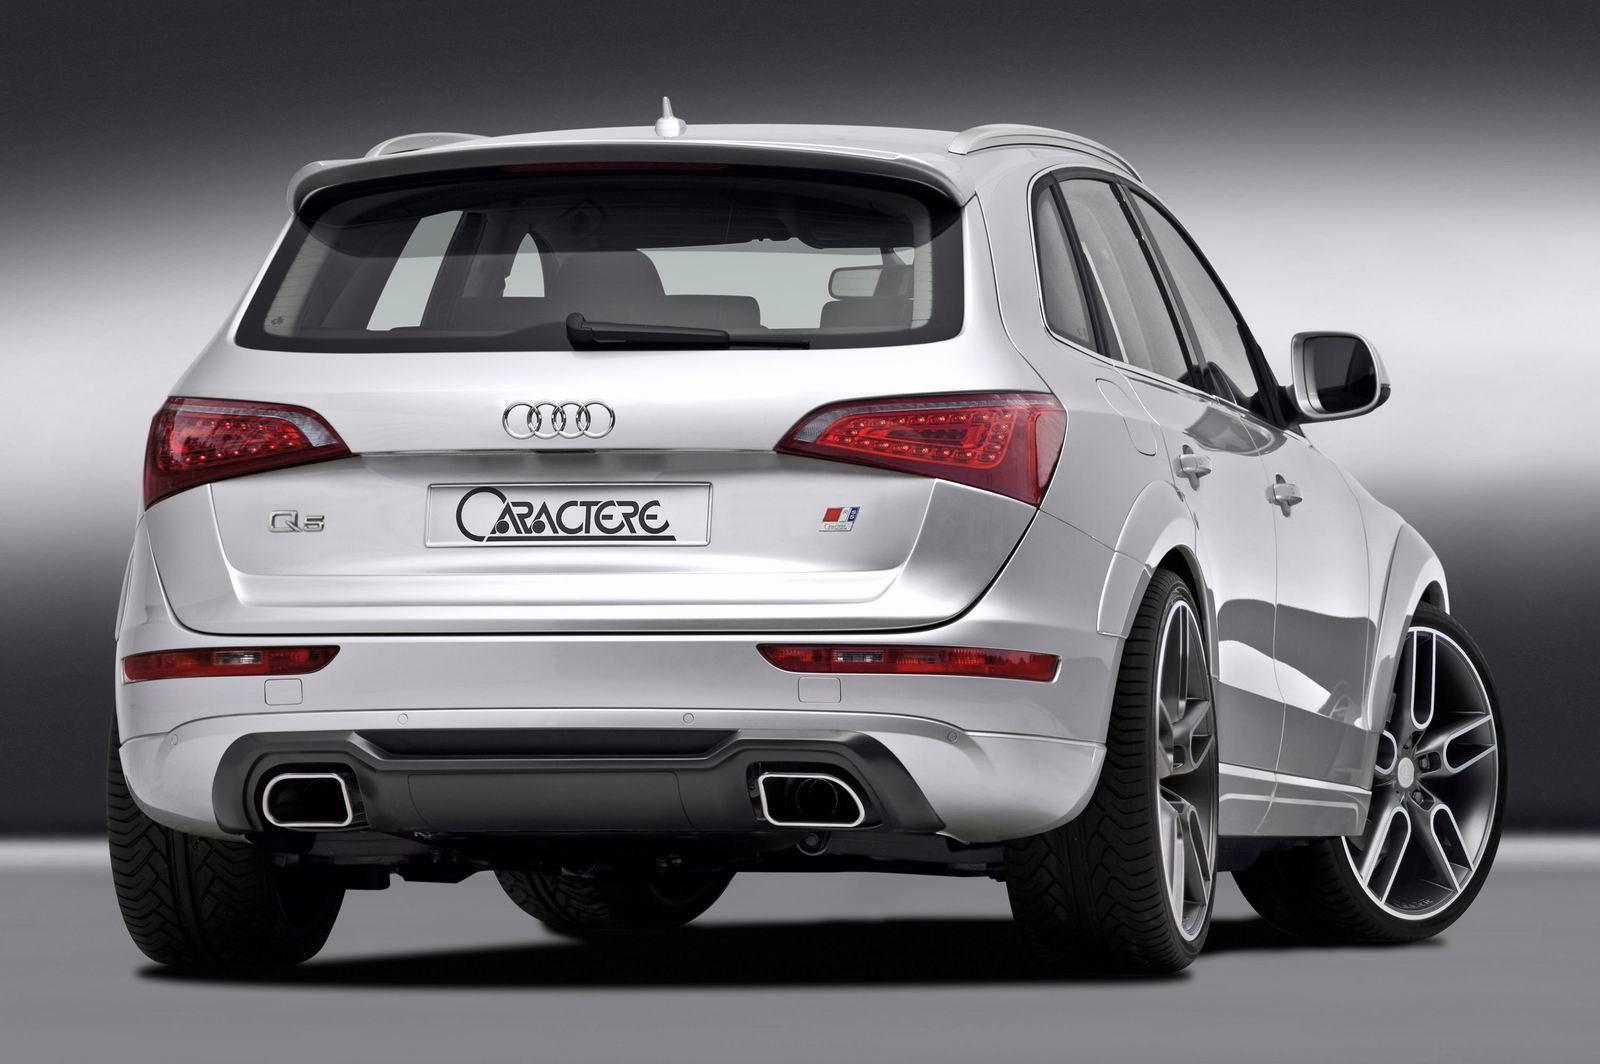 Audi Q5 Wallpapers | Tops Wallpapers Gallery